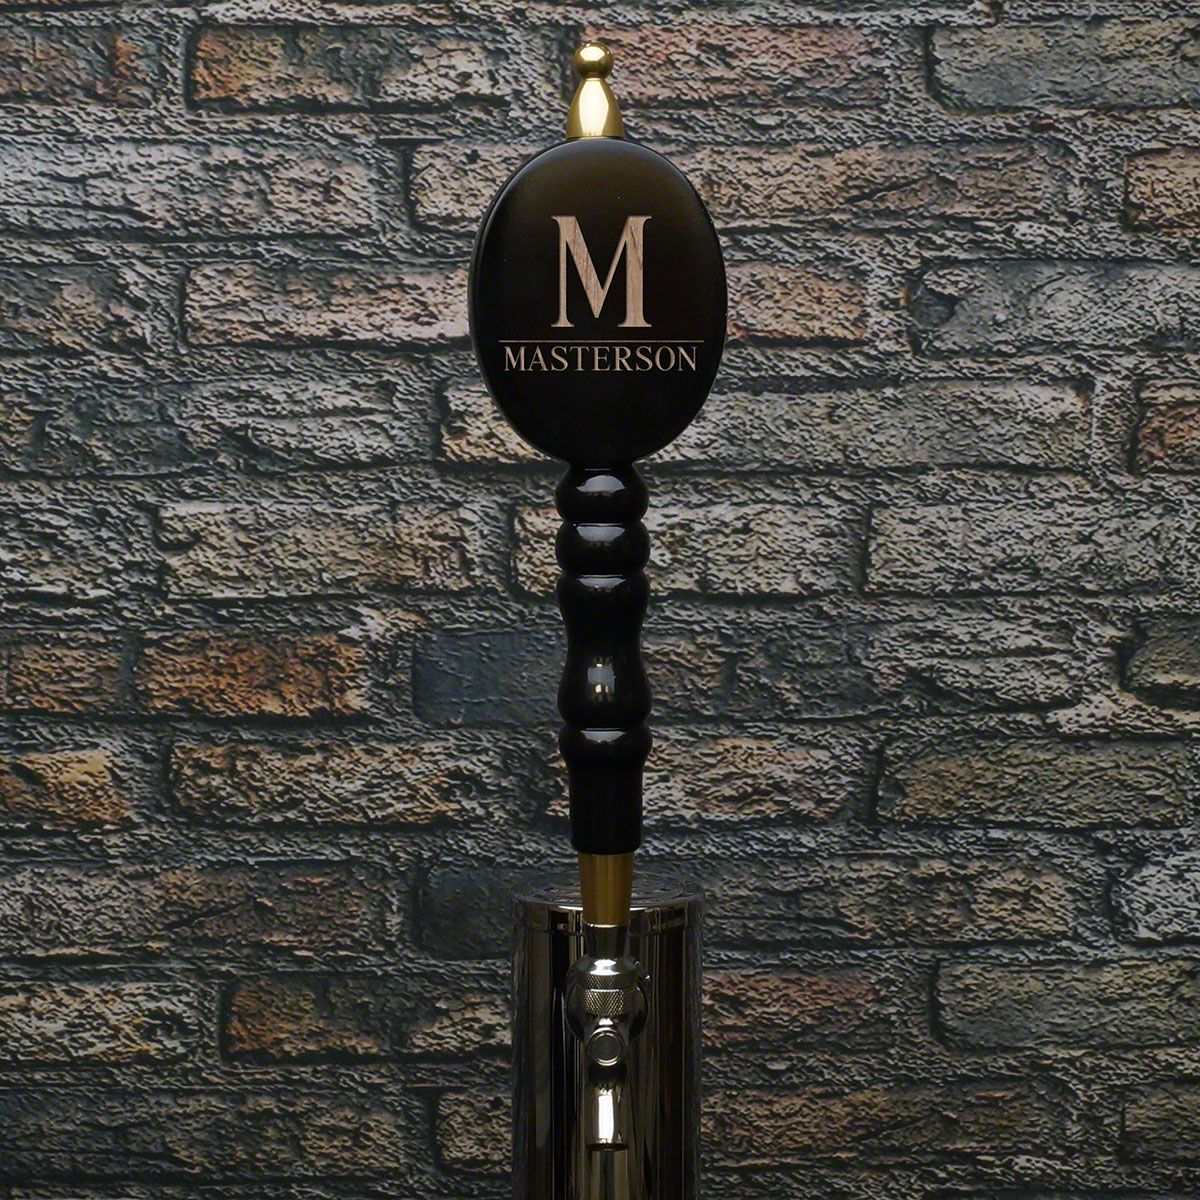 Initial Draw Beer Tap Handle